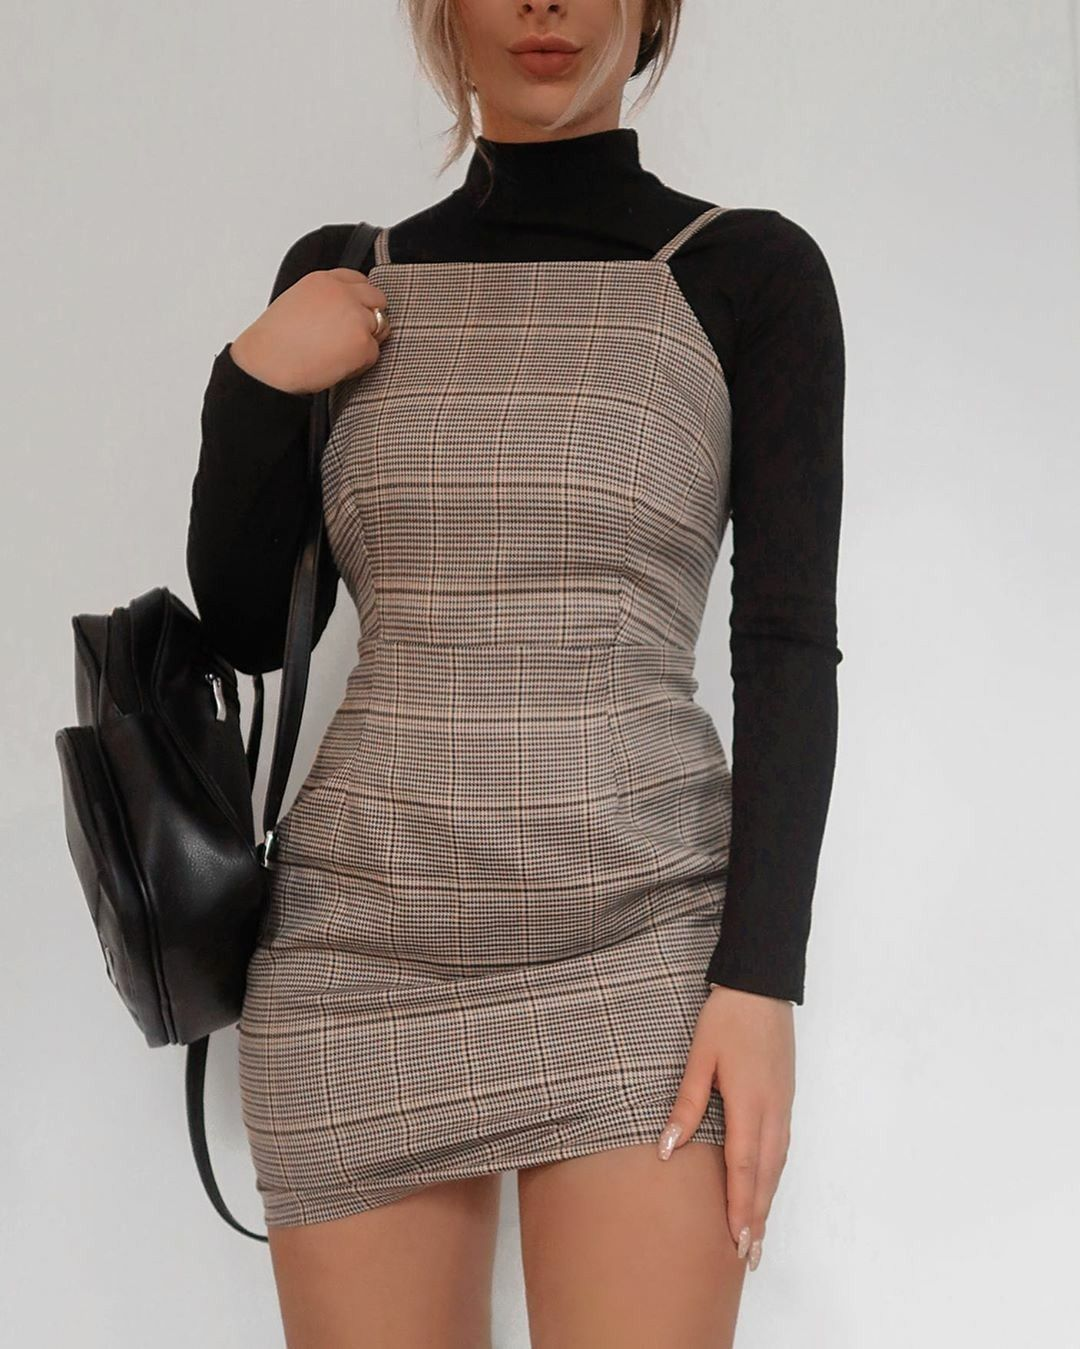 New Cute Outfits and Cool Fashion Look Ideas Of Popular Wear #casualchristmasoutfitsforwomen